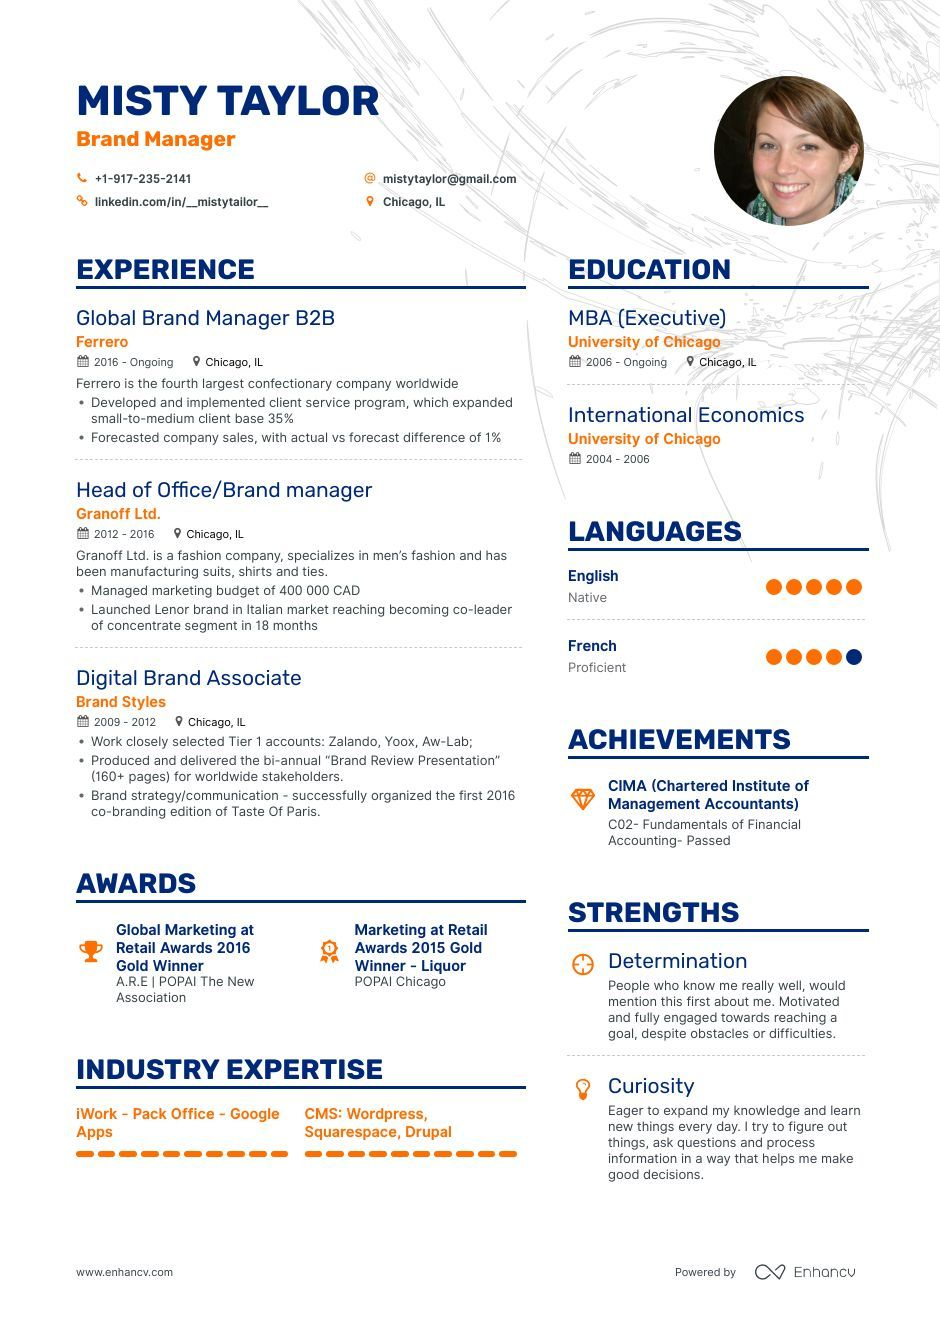 Brand manager Resume Examples and Skills You Need to Get